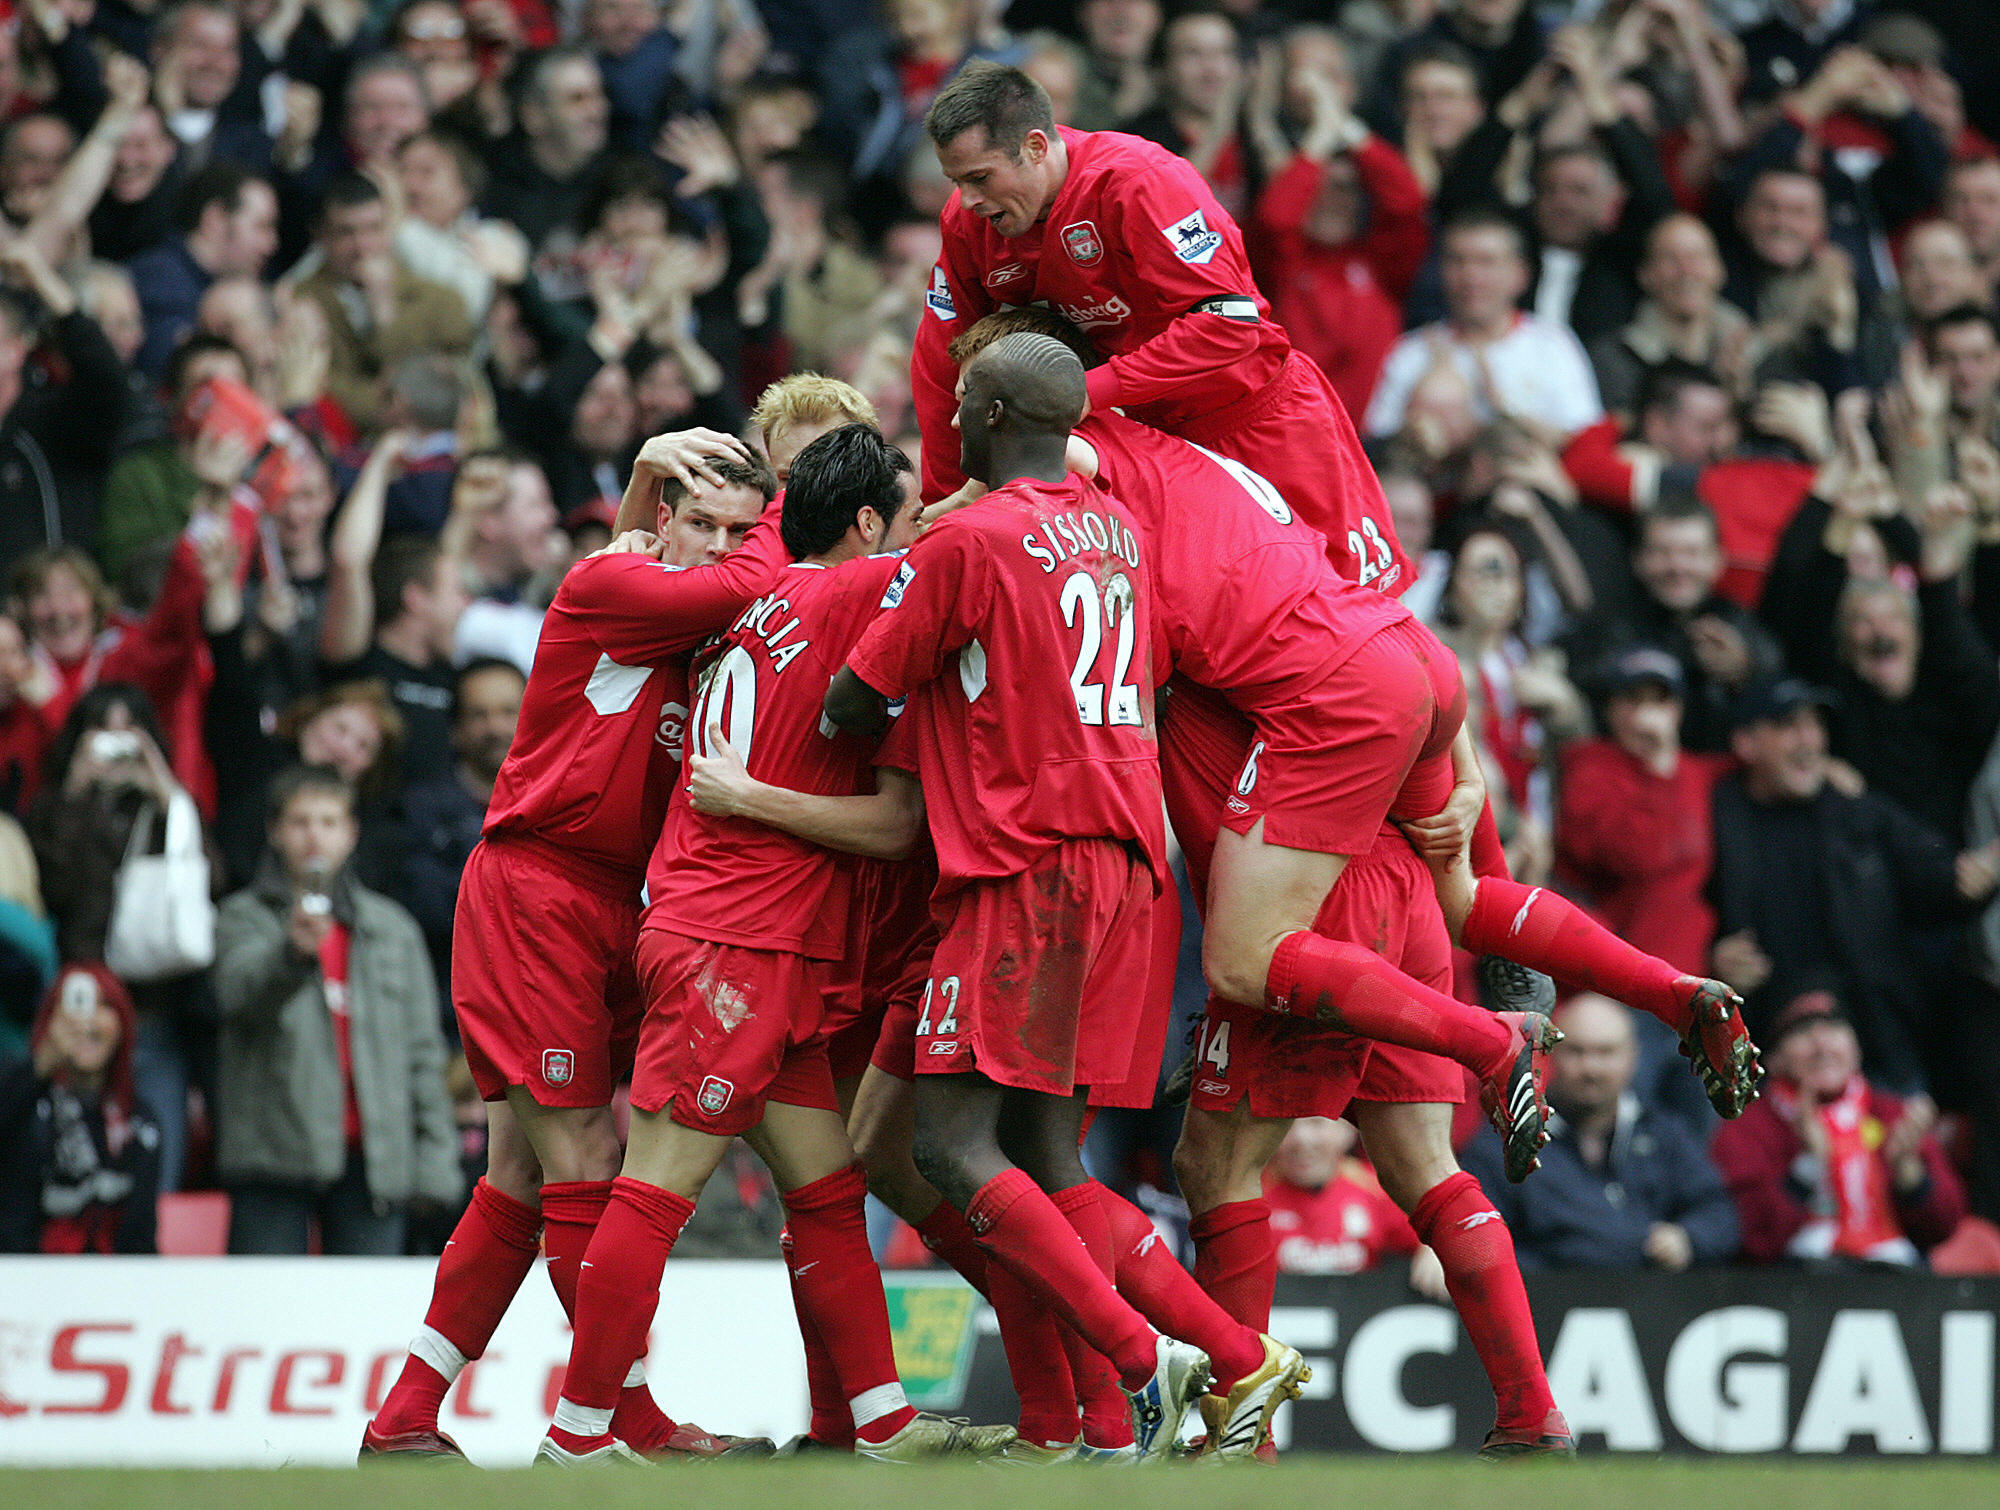 Liverpool: Celebrating Kewell's goal